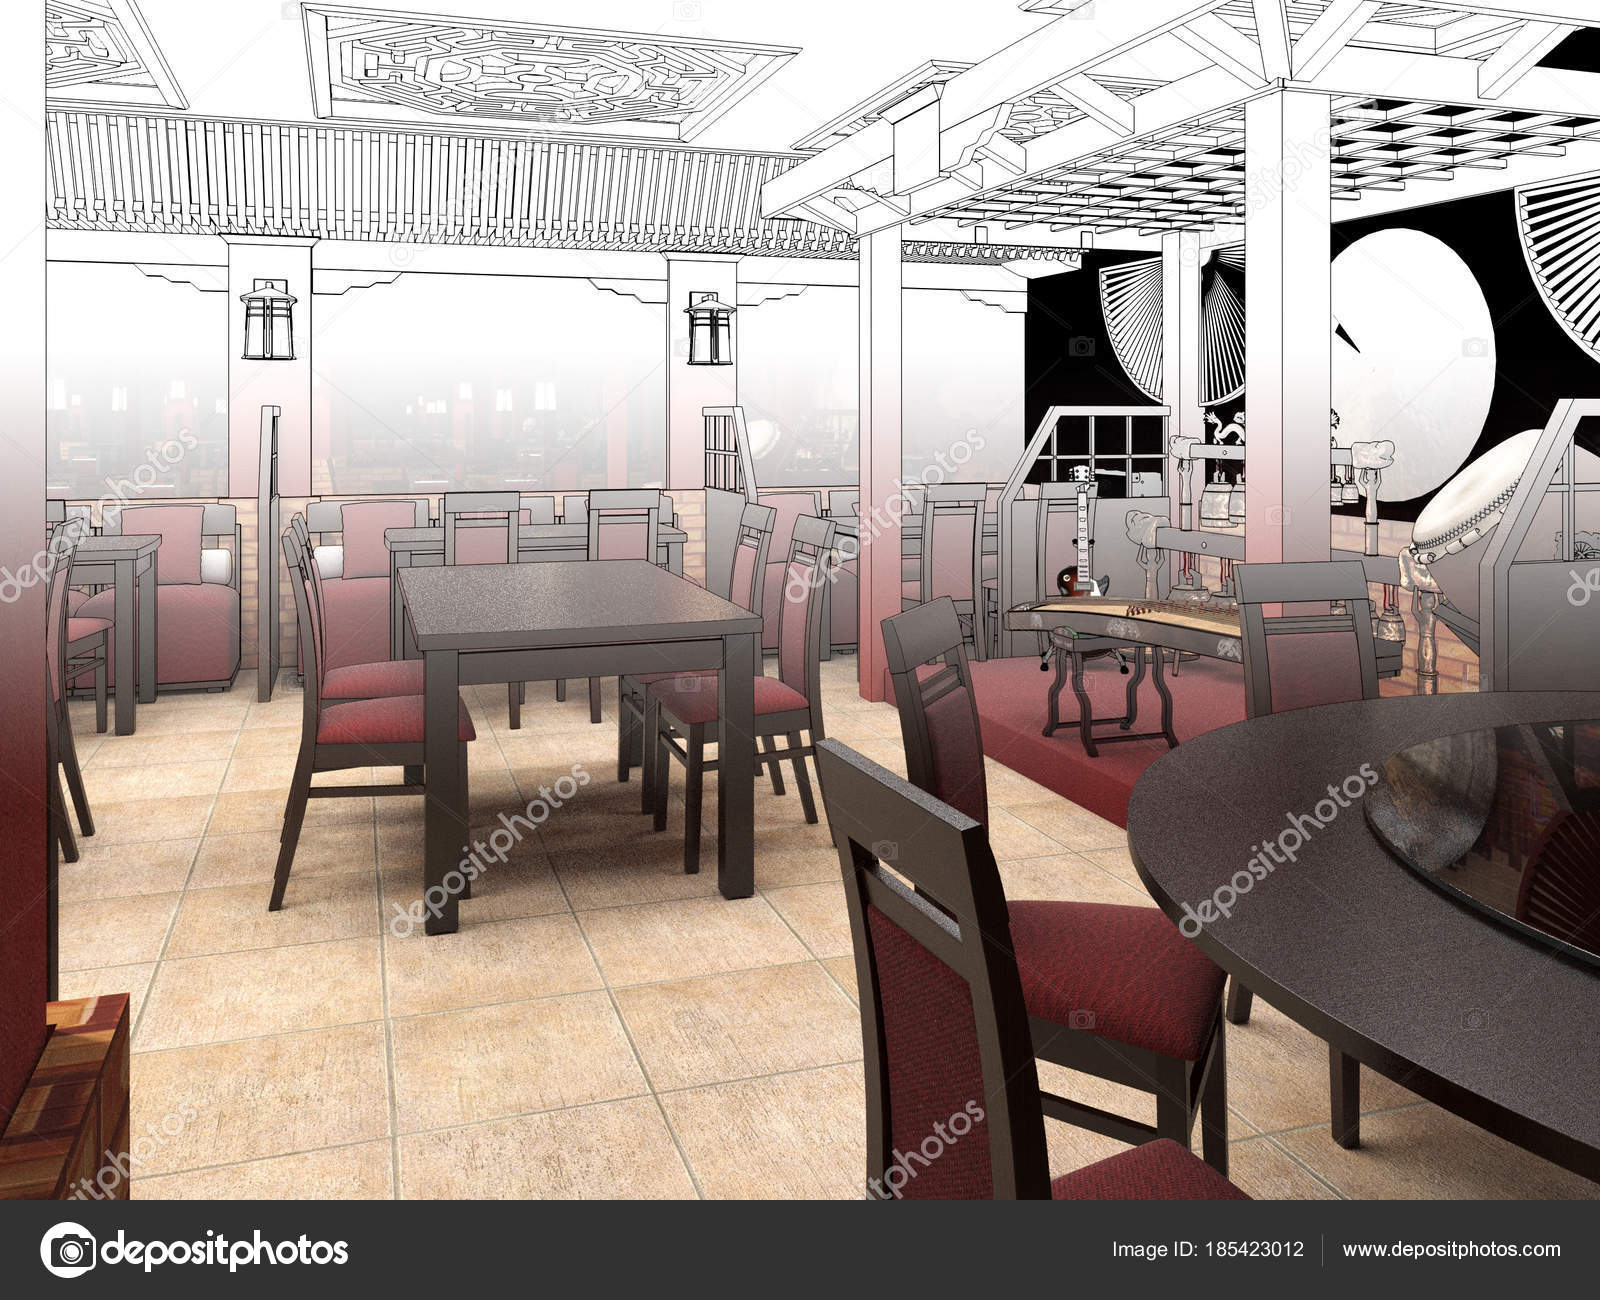 Chinese Restaurant Interiors Render Black And White Sketch Of The Chinese Restaurant Interior Design Stock Photo C Wassiliy 185423012